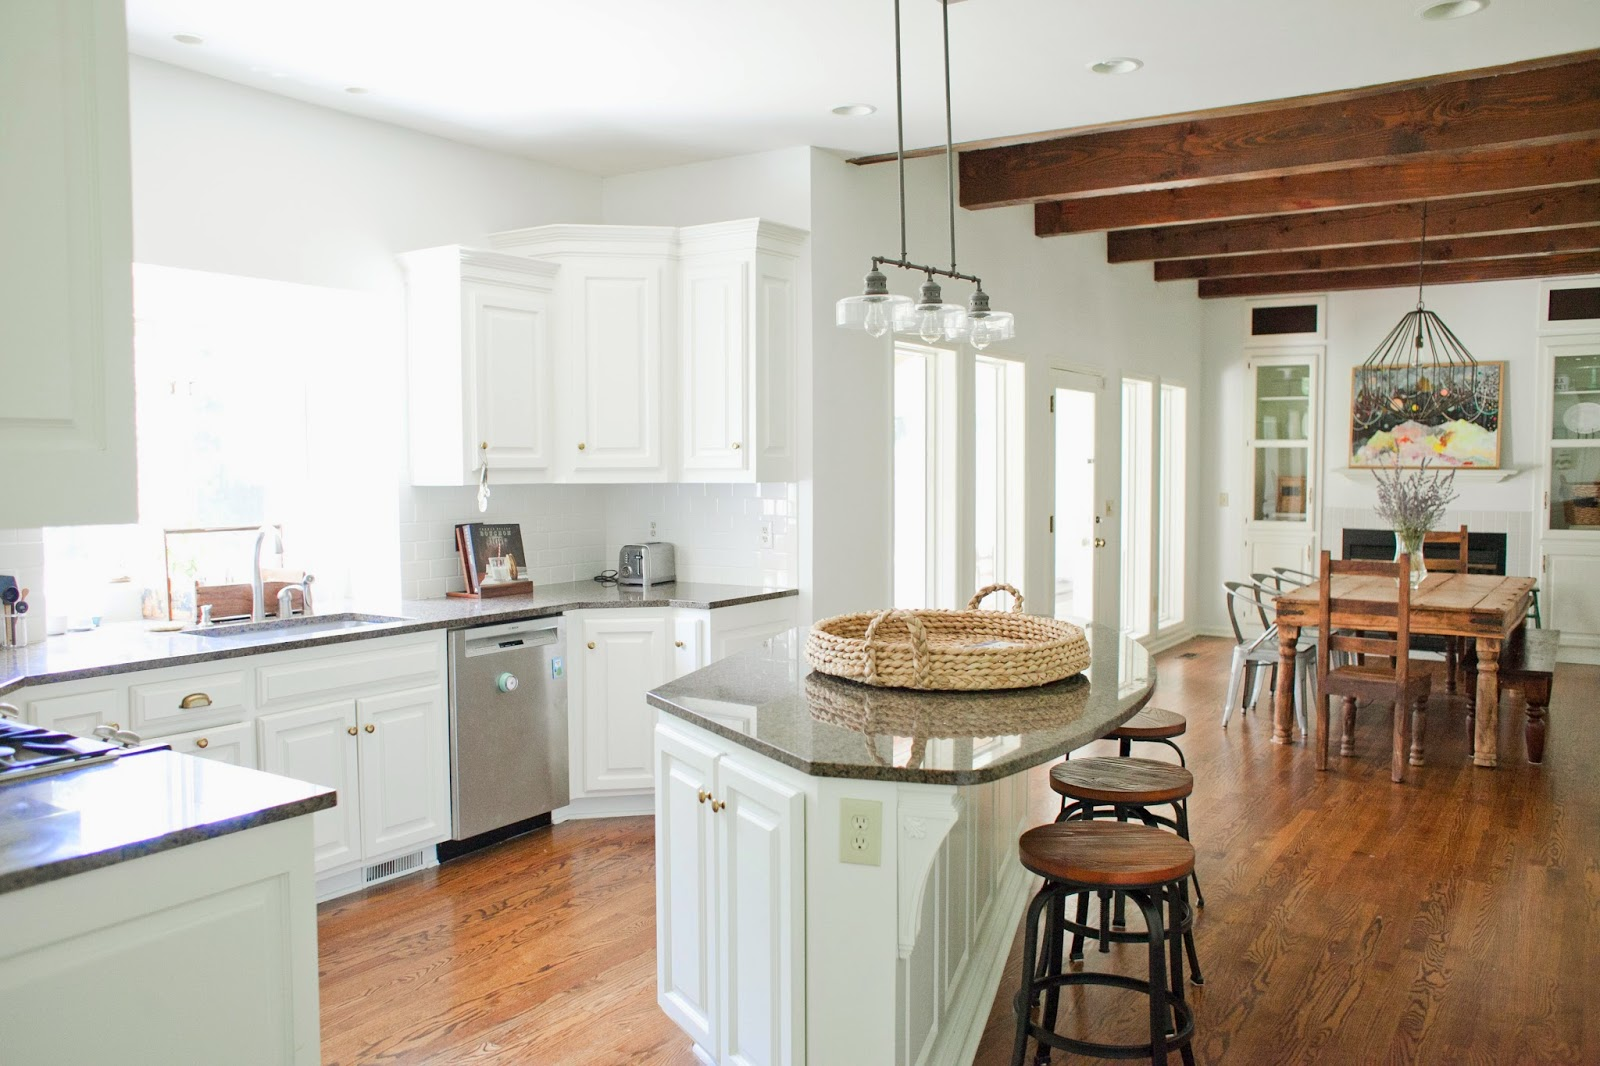 from the nato\'s: yet, another kitchen redo. because WHITE KITCHENS!